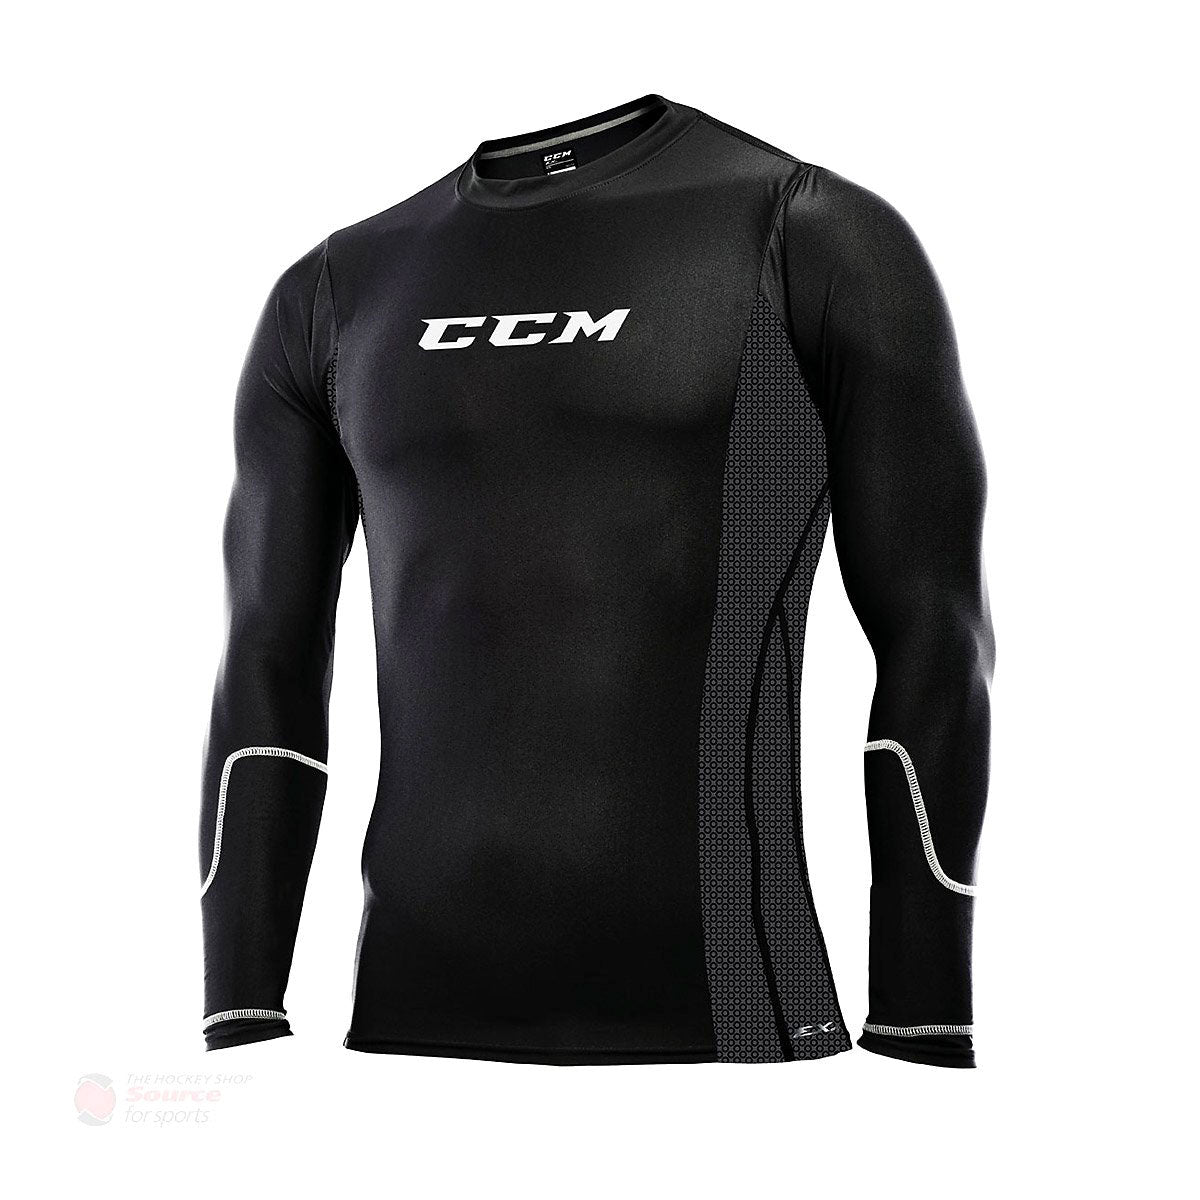 CCM Cut Resistant Pro Senior Compression Shirt